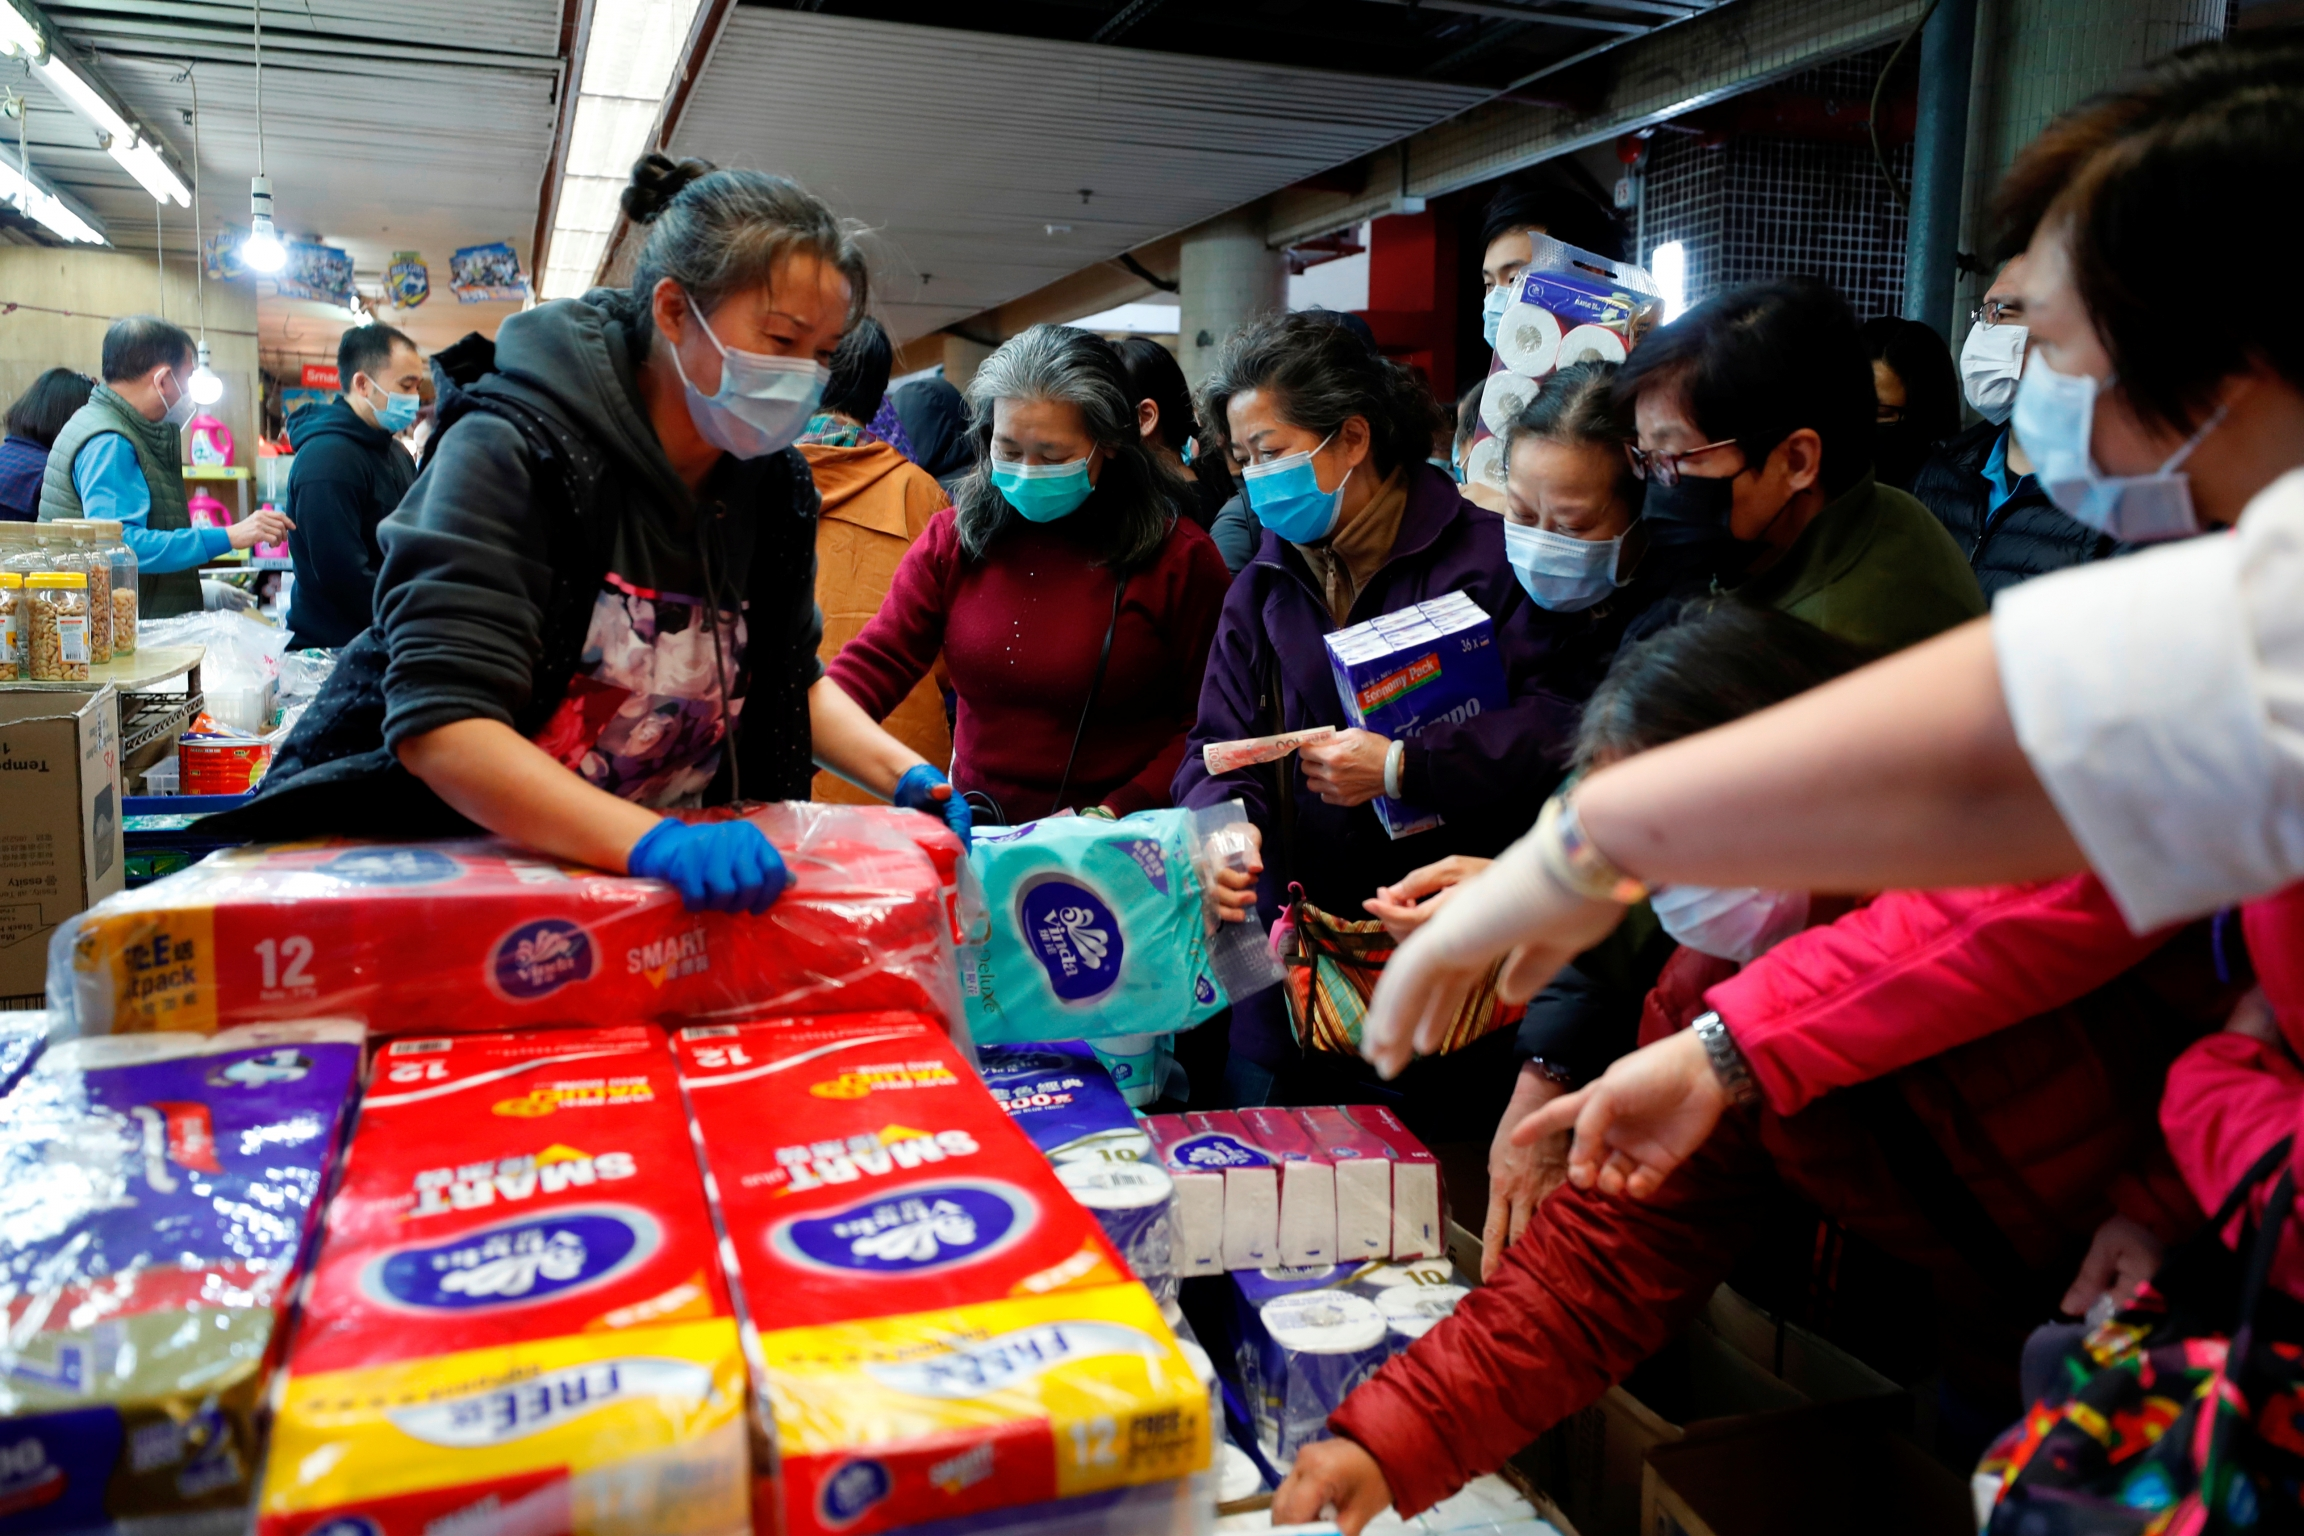 Customers pick paper products at a market, following the outbreak of COVID-19, in Hong Kong, China Feb. 11, 2020.